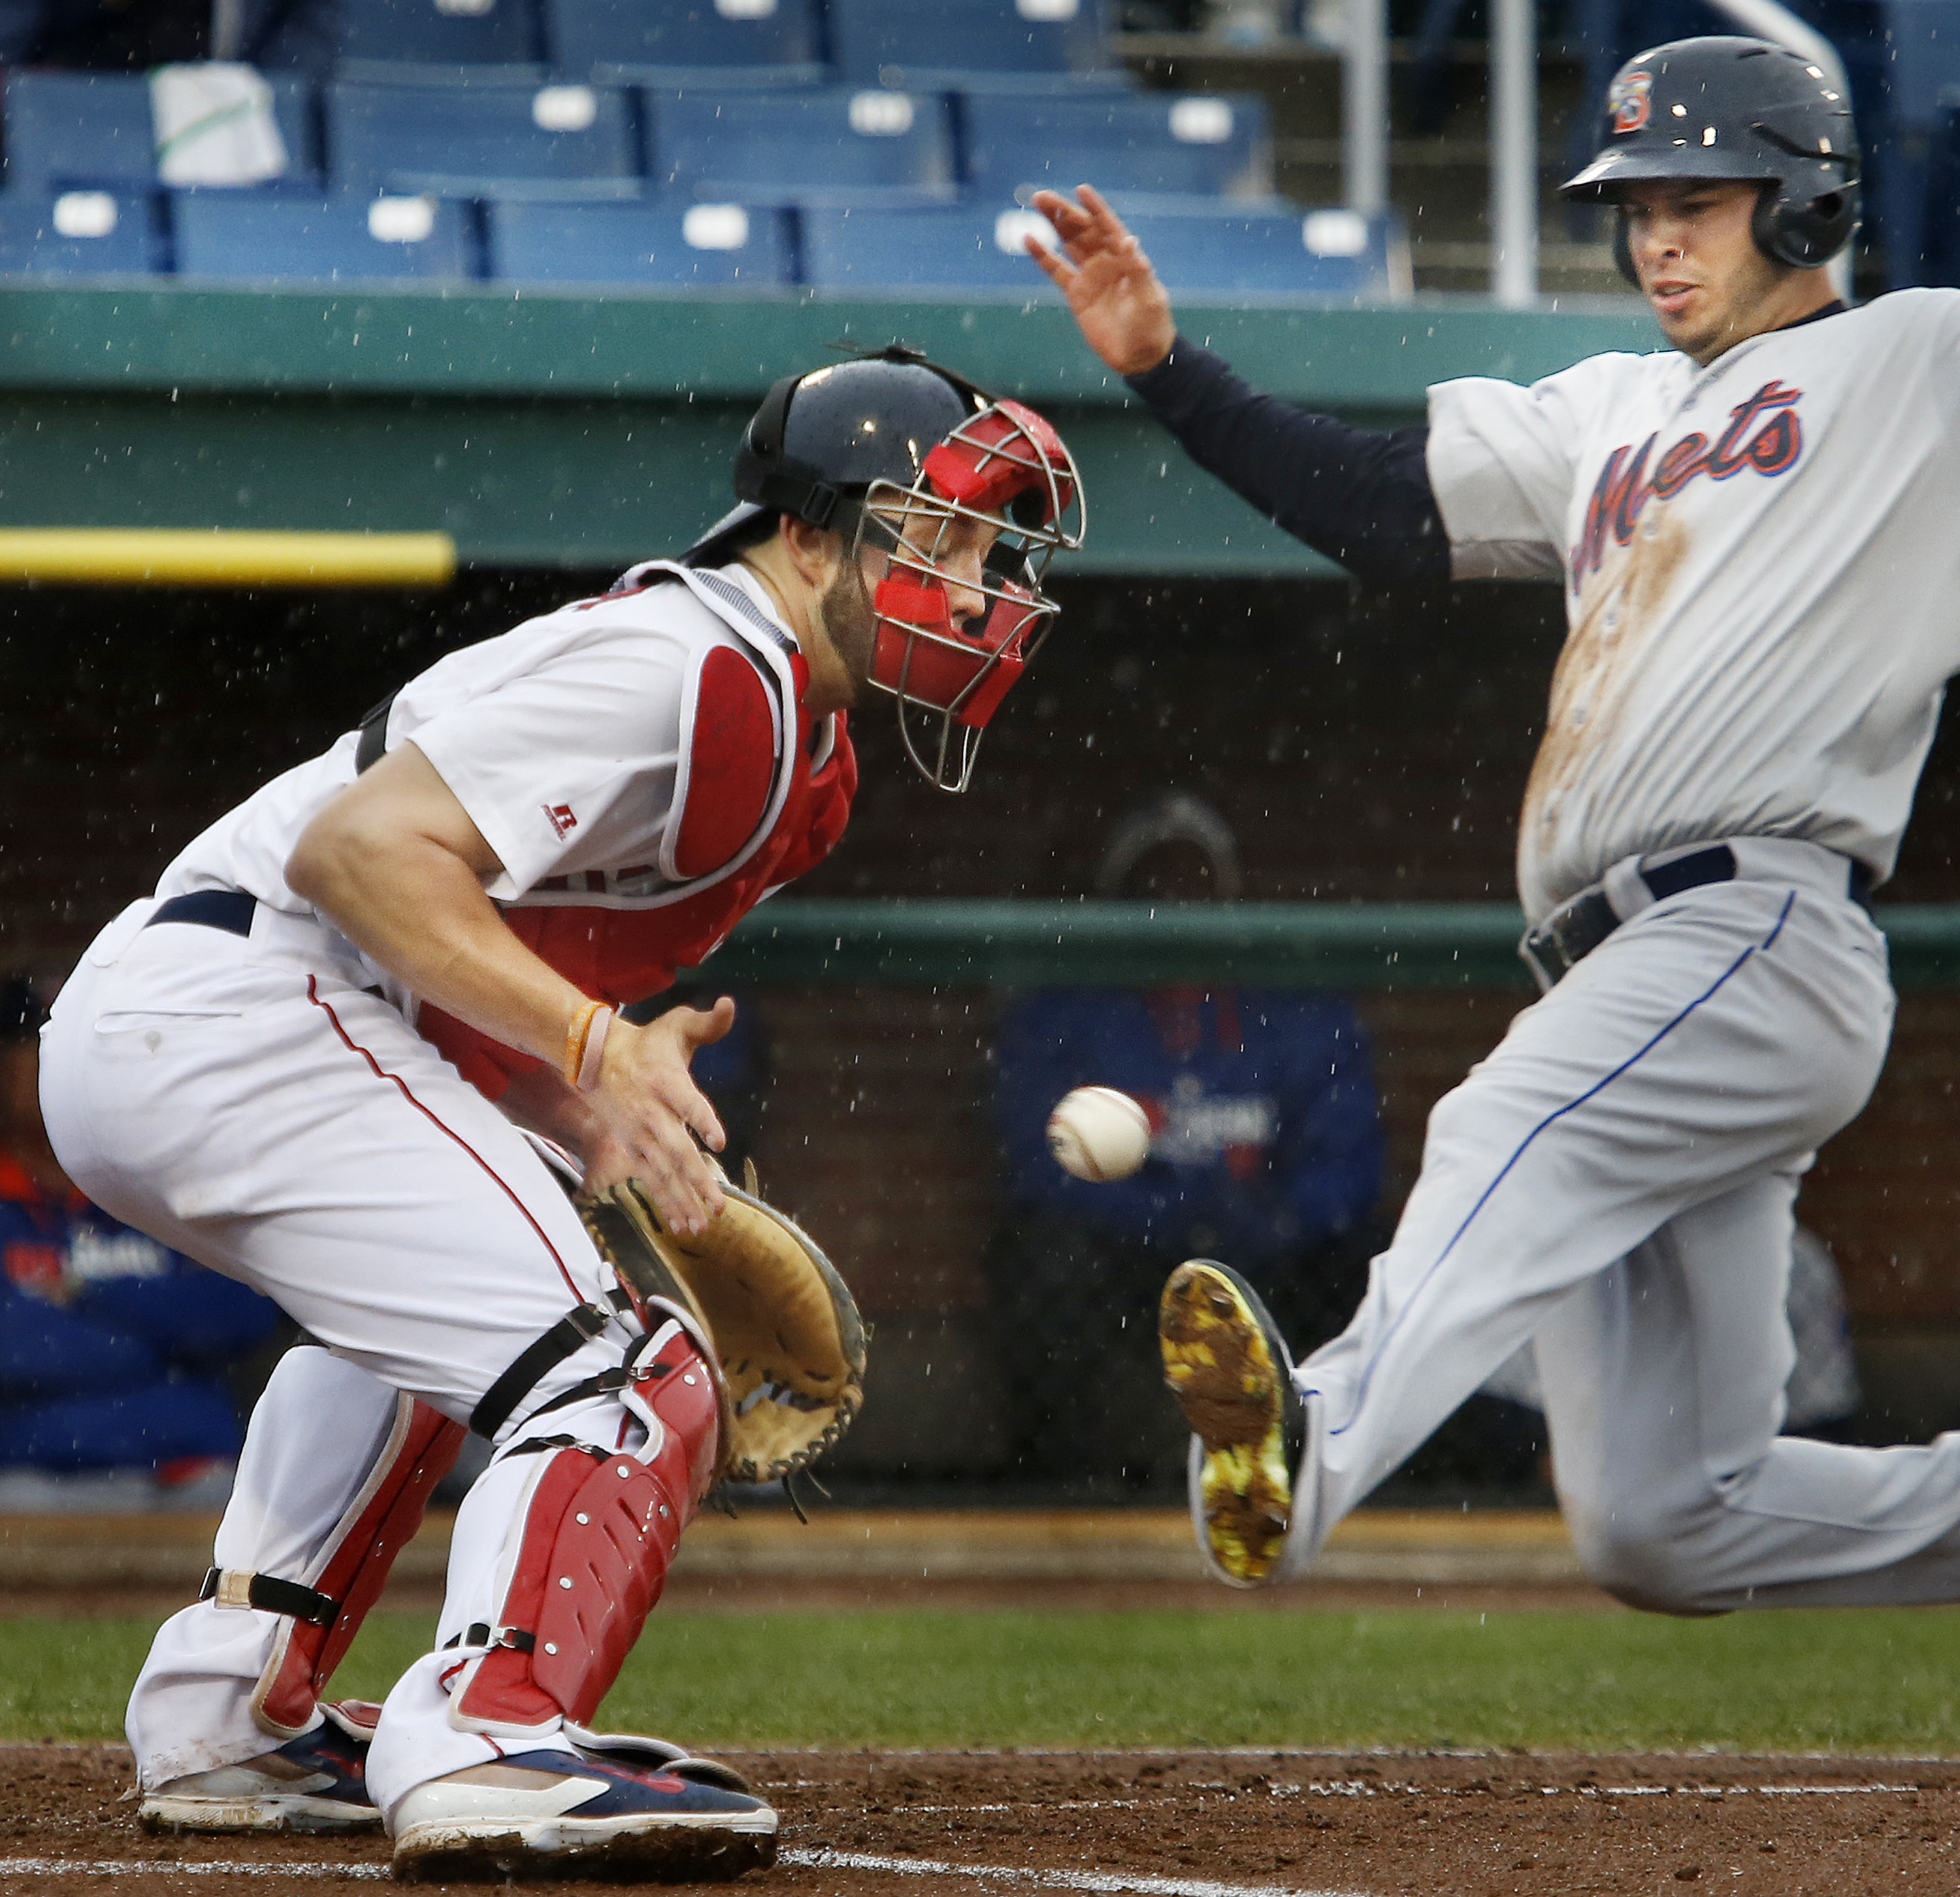 The throw to Blake Swihart of Portland is a little late as Matt Clark of Binghampton comes in to score, Monday, May 19, during the fourth inning at Hadlock Field. Derek Davis/Staff Photographer